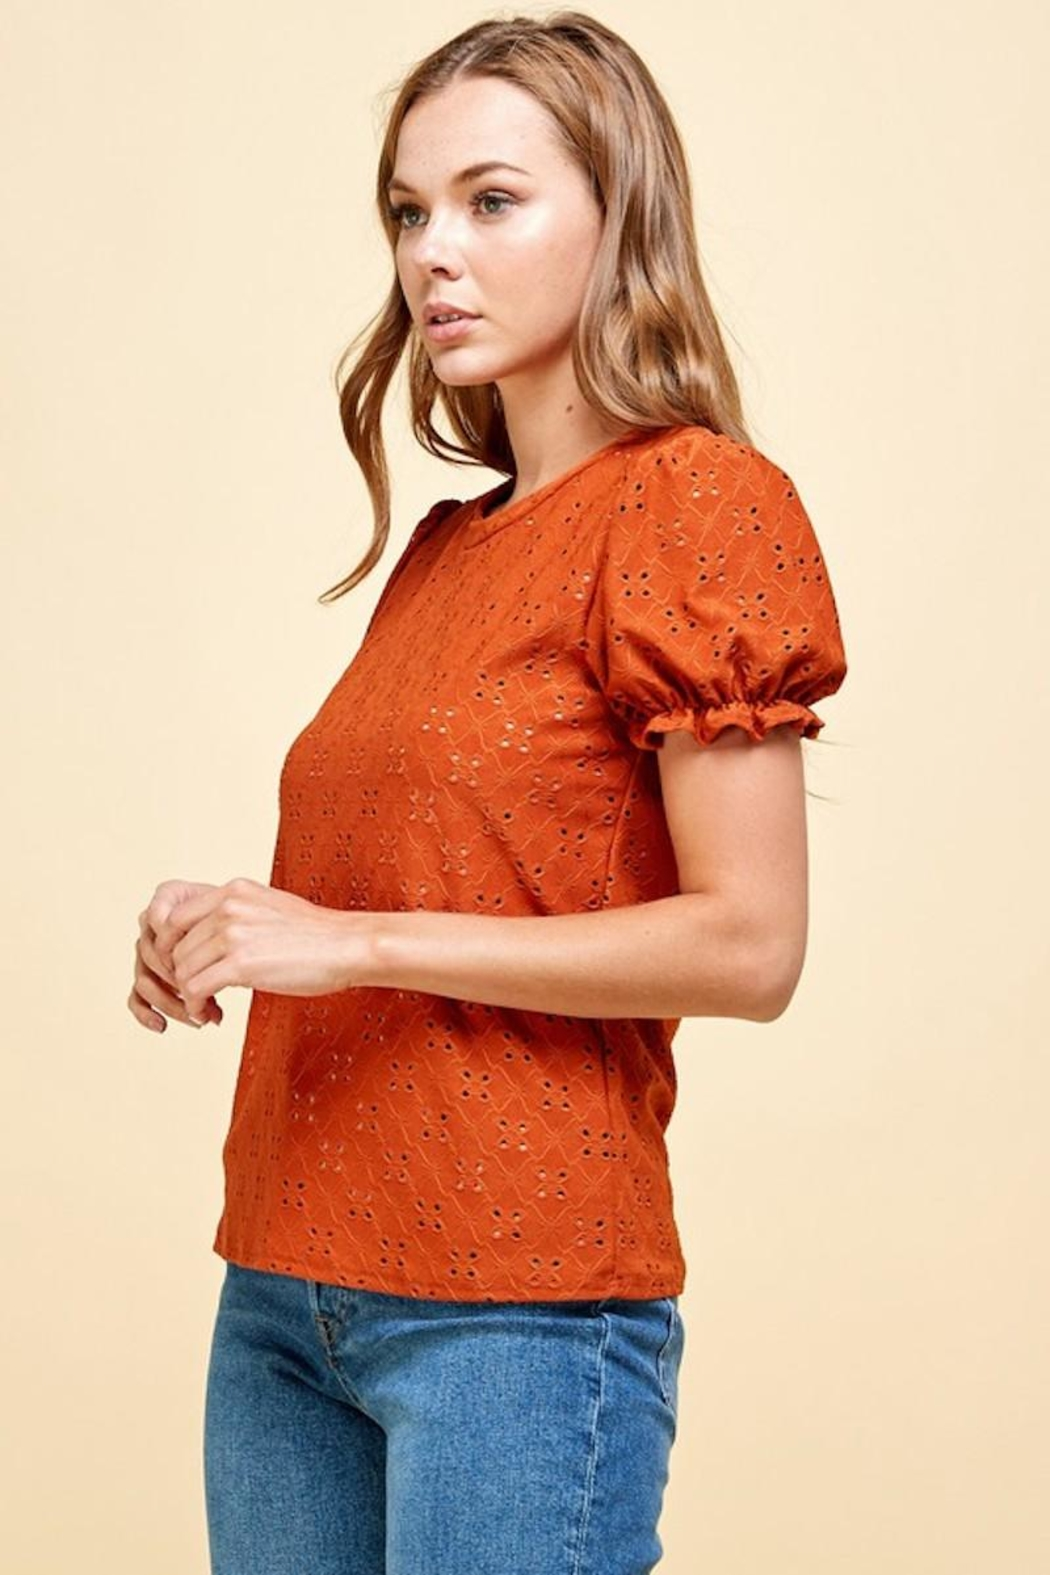 Les Amis Emily's Eyelet Top In Pumpkin - Front Full Image